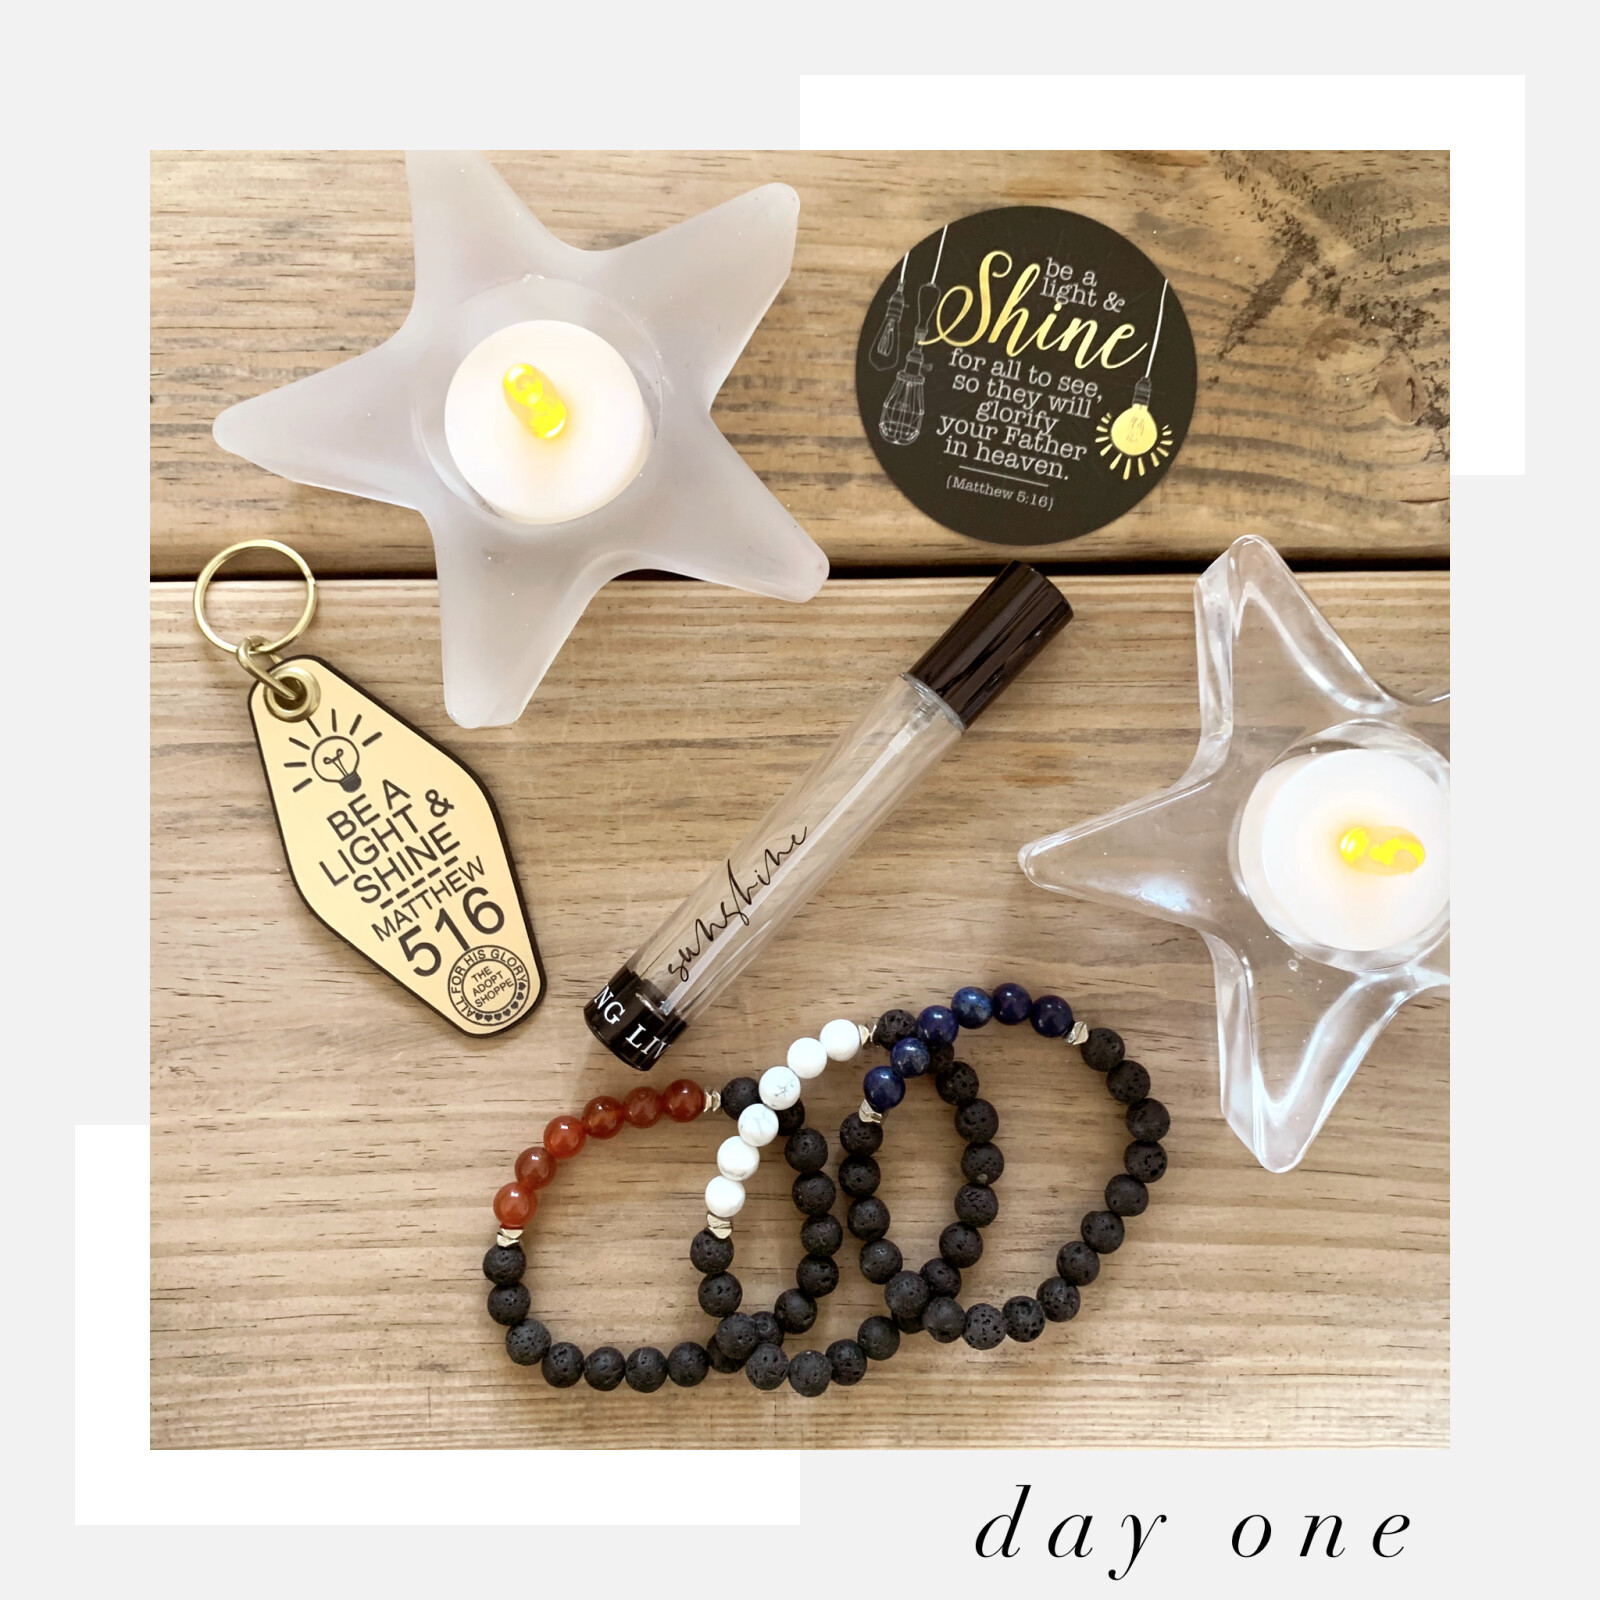 12 Days of Giveaways: Day 1 - Shine